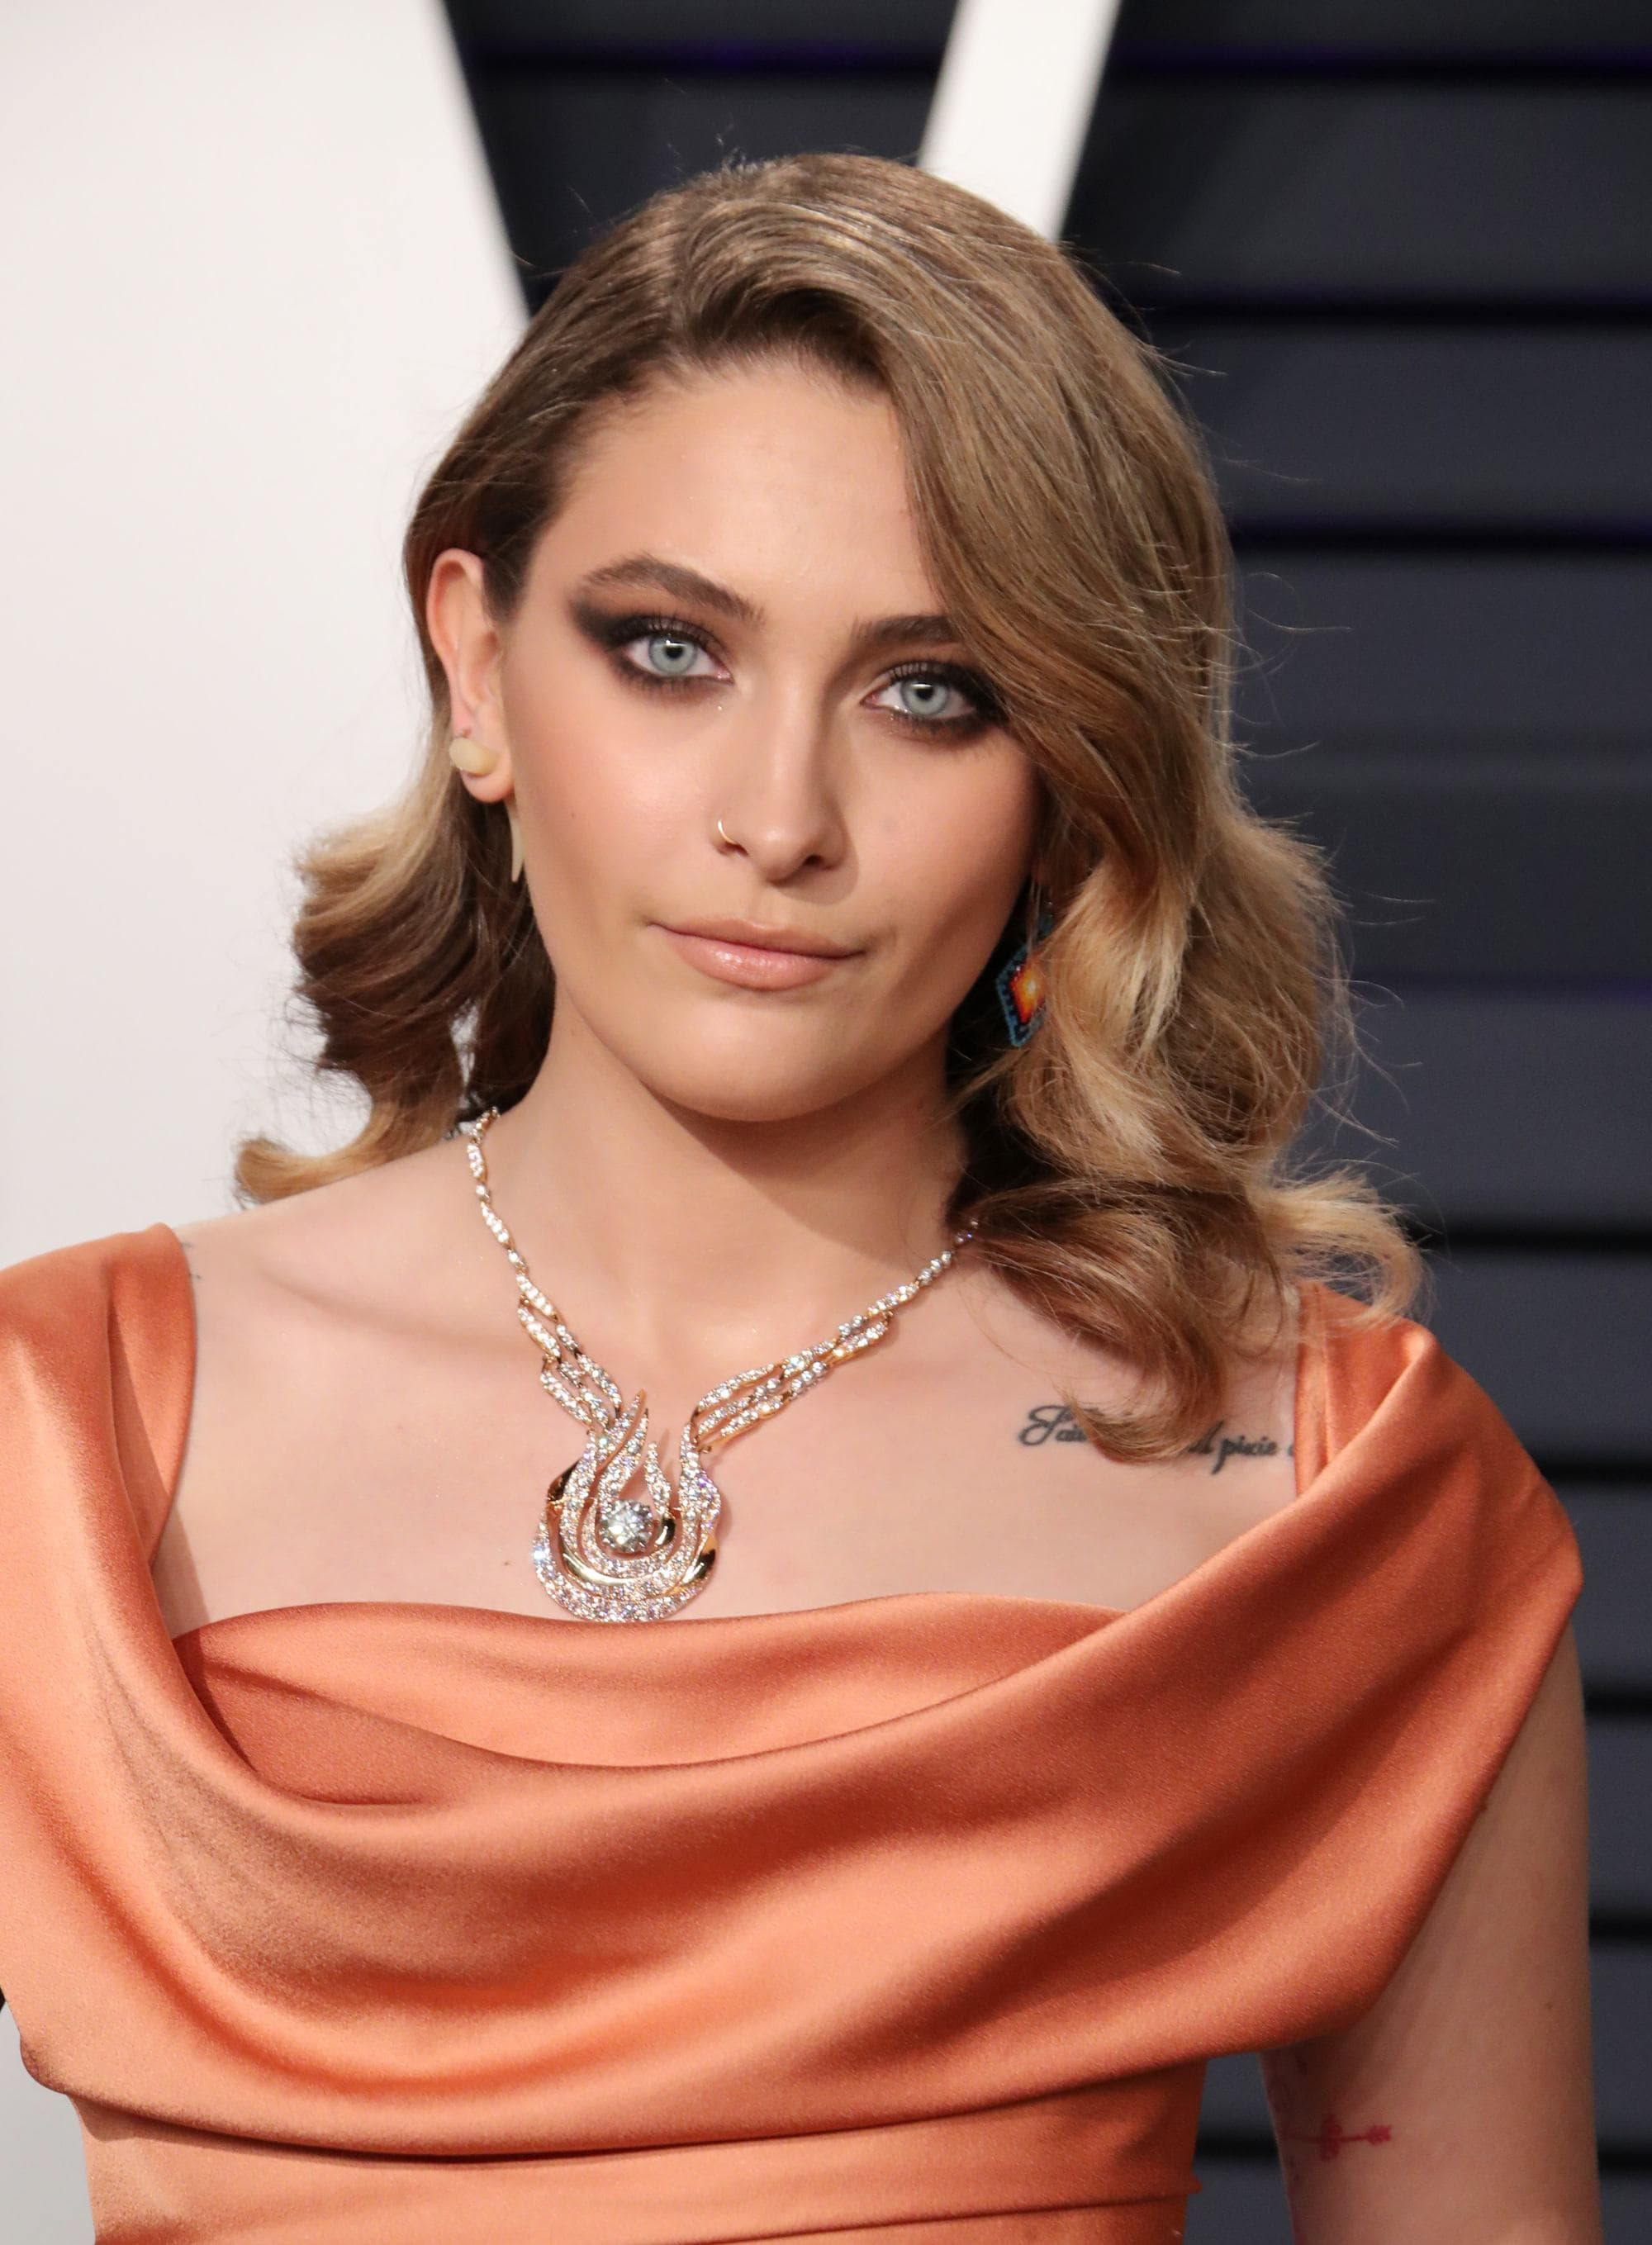 Paris Jackson on the red carpet with tawny caramel hair swept to the side and styled into retro curls, wearing orange top